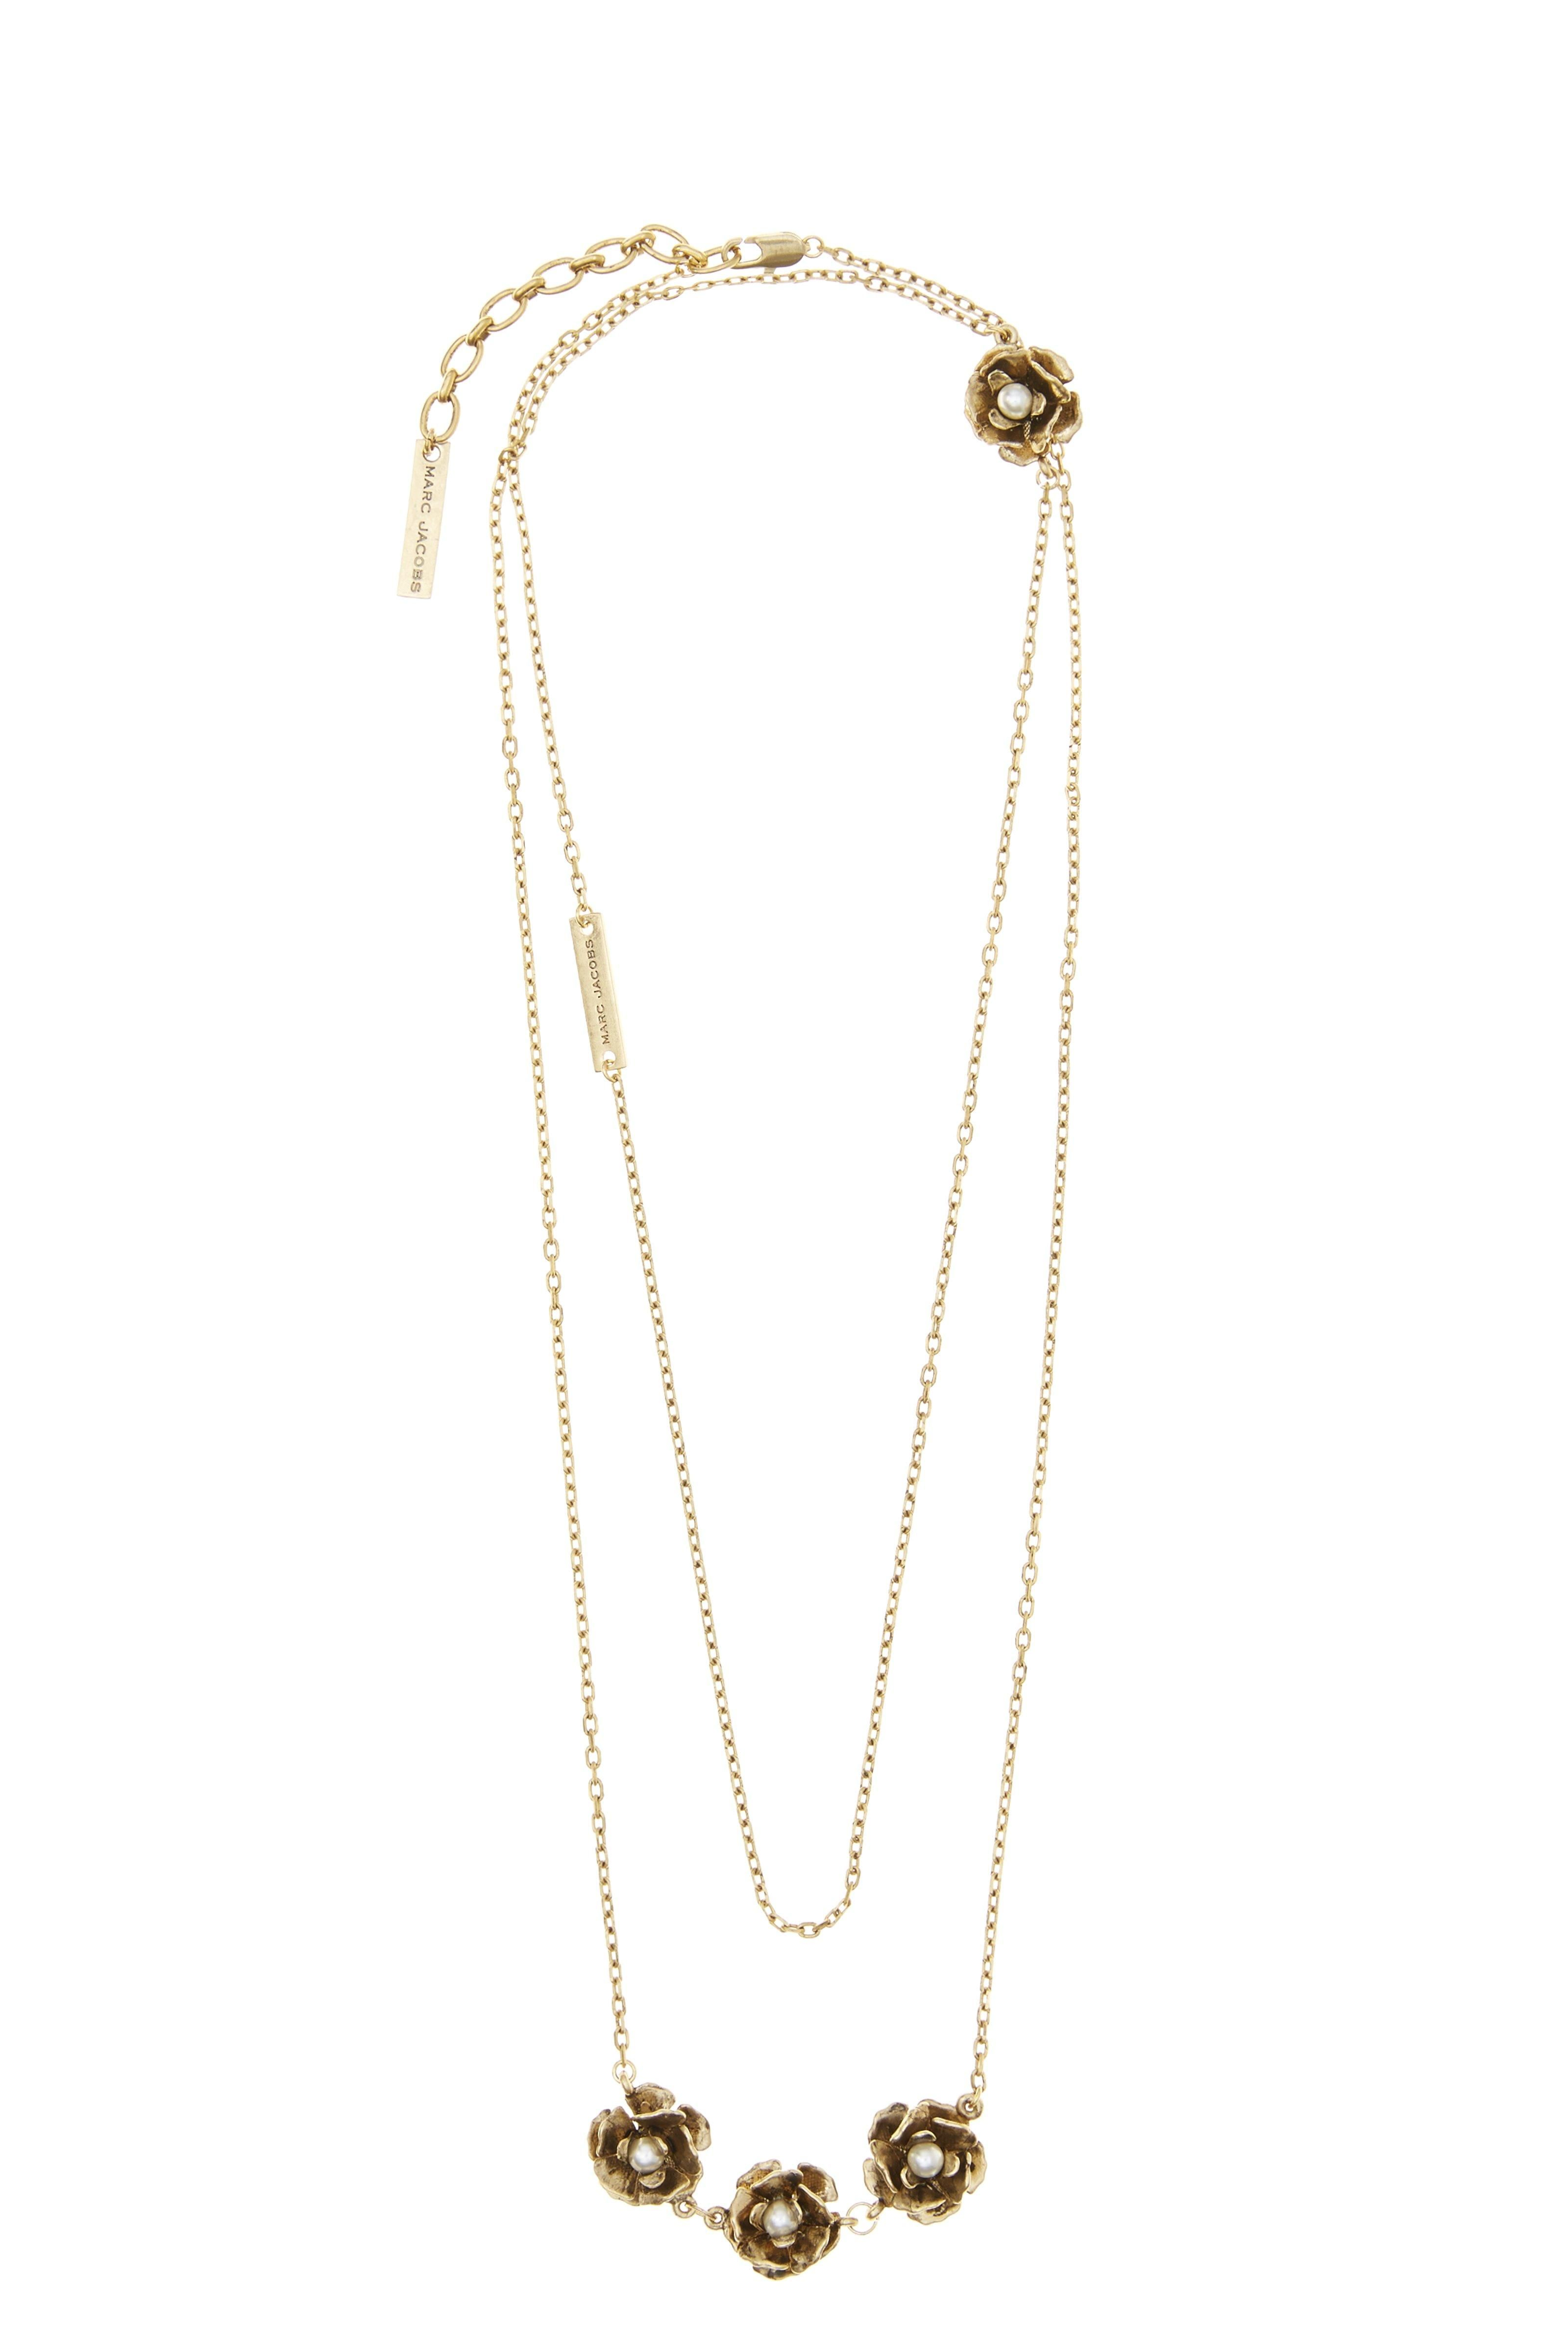 Marc Jacobs Necklaces, Silver, Sterling Silver, 2017, One Size